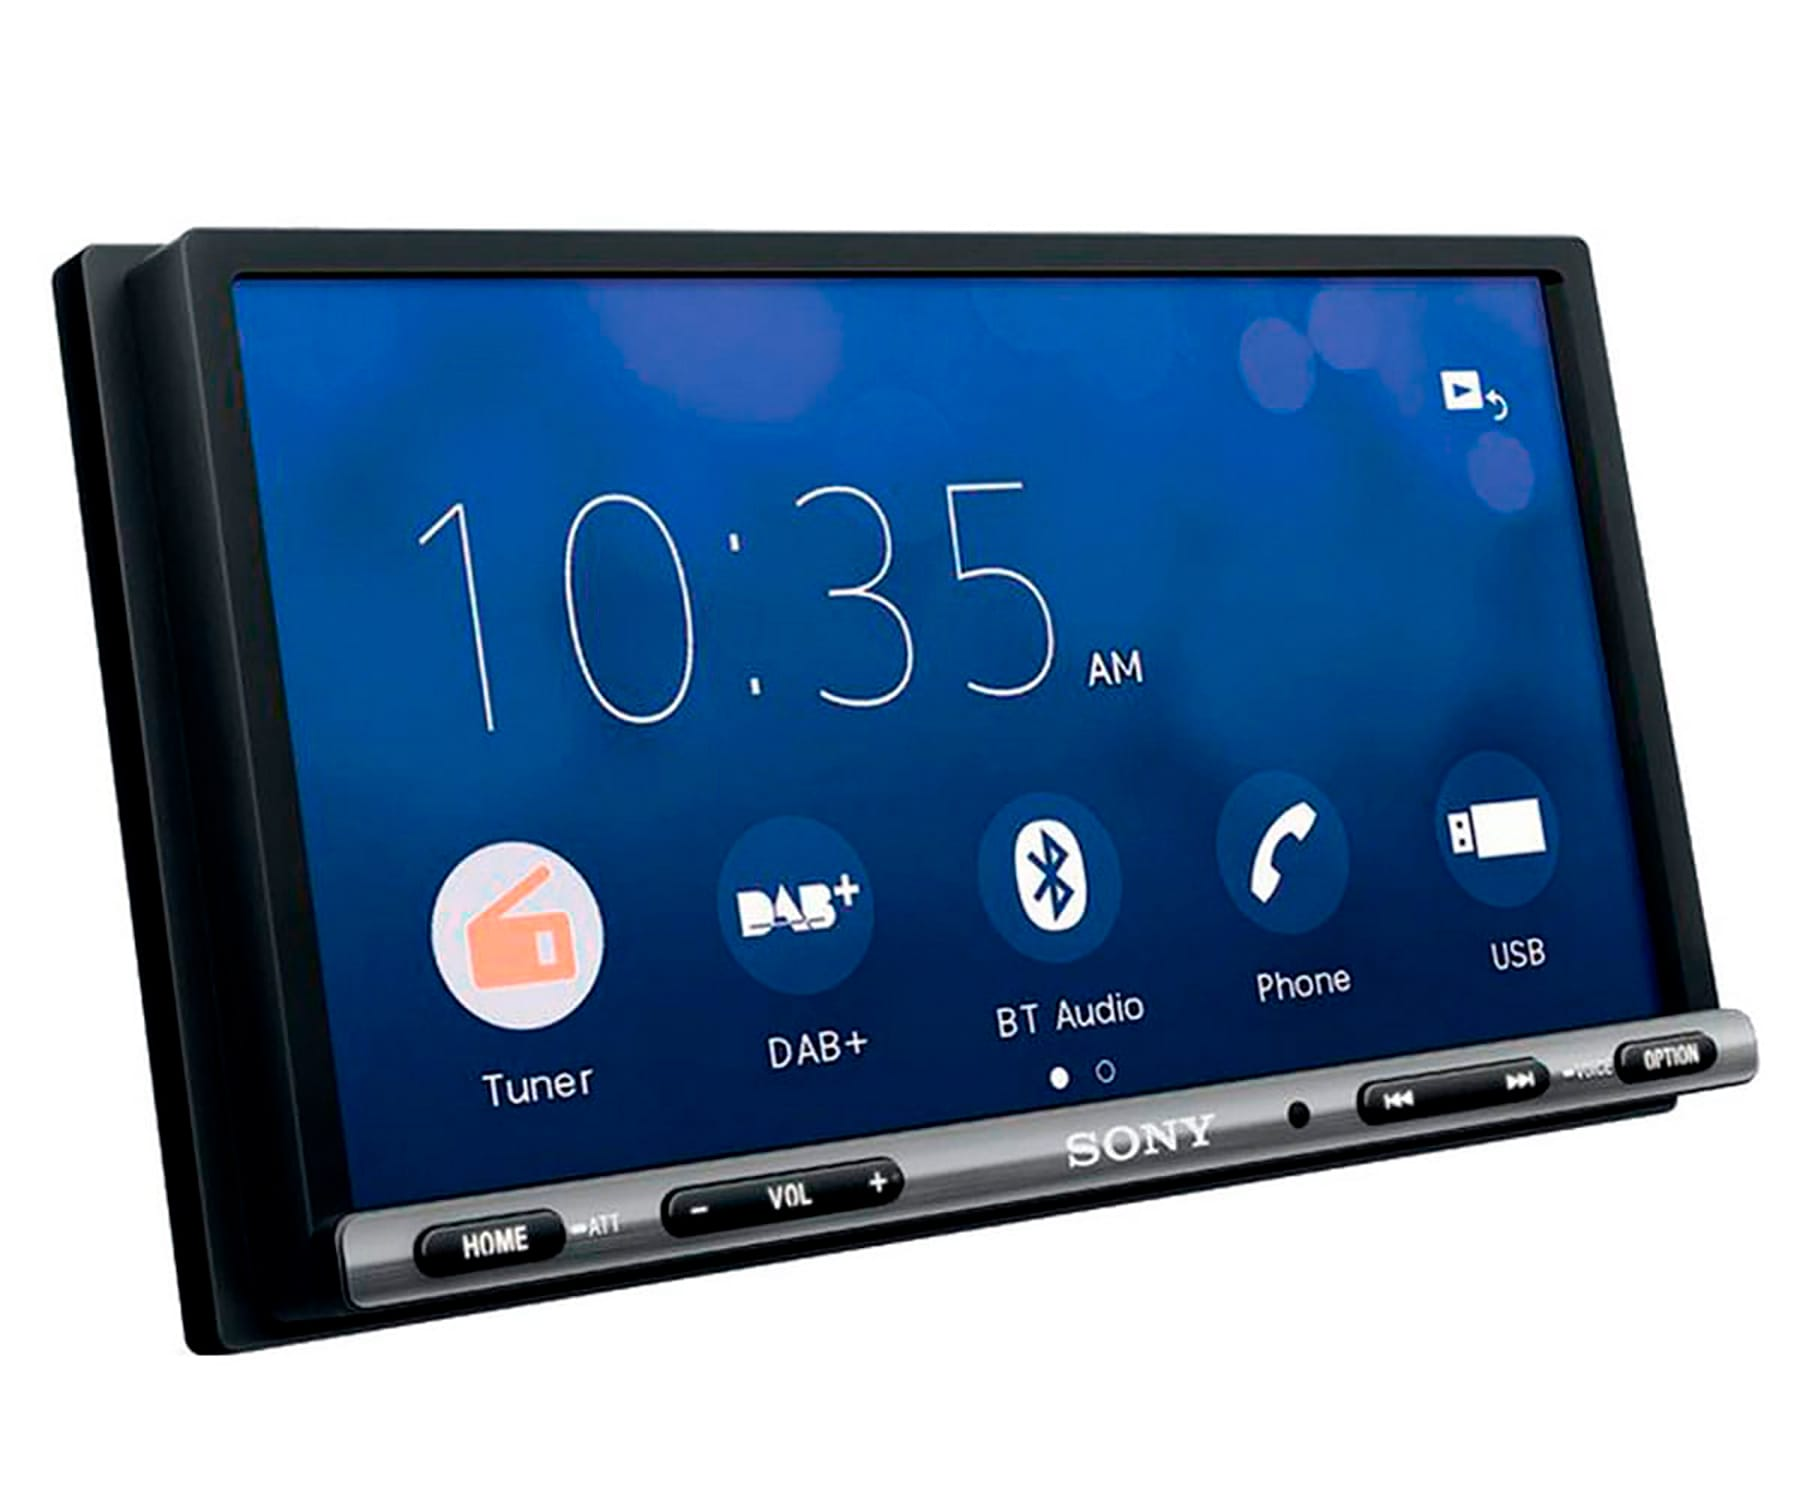 SONY XAV-AX3005DB RECEPTOR DE DAB CON PANTALLA DE 6.95'' PARA EL COCHE CON BLUETOOTH APPLE CARPLAY Y ANDROID AUTO